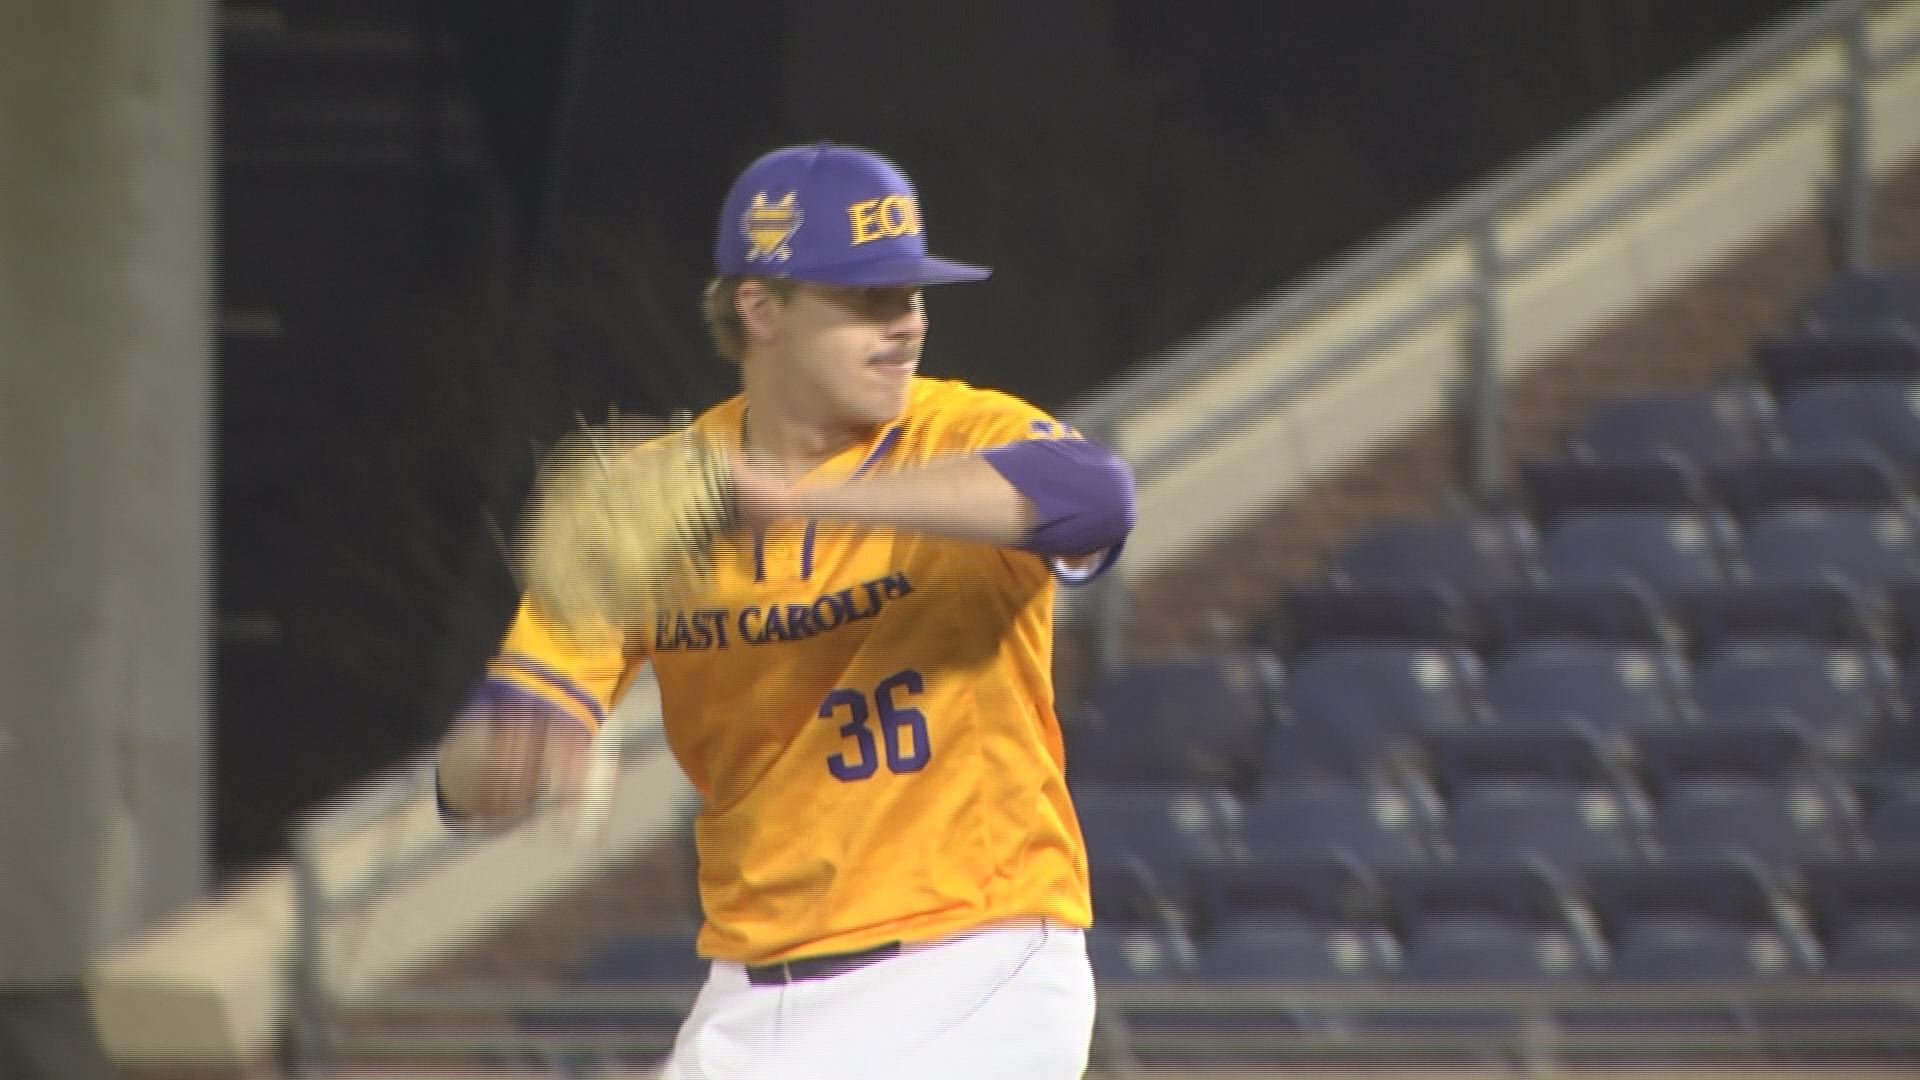 ECU BASEBALL BEATS MD_179738